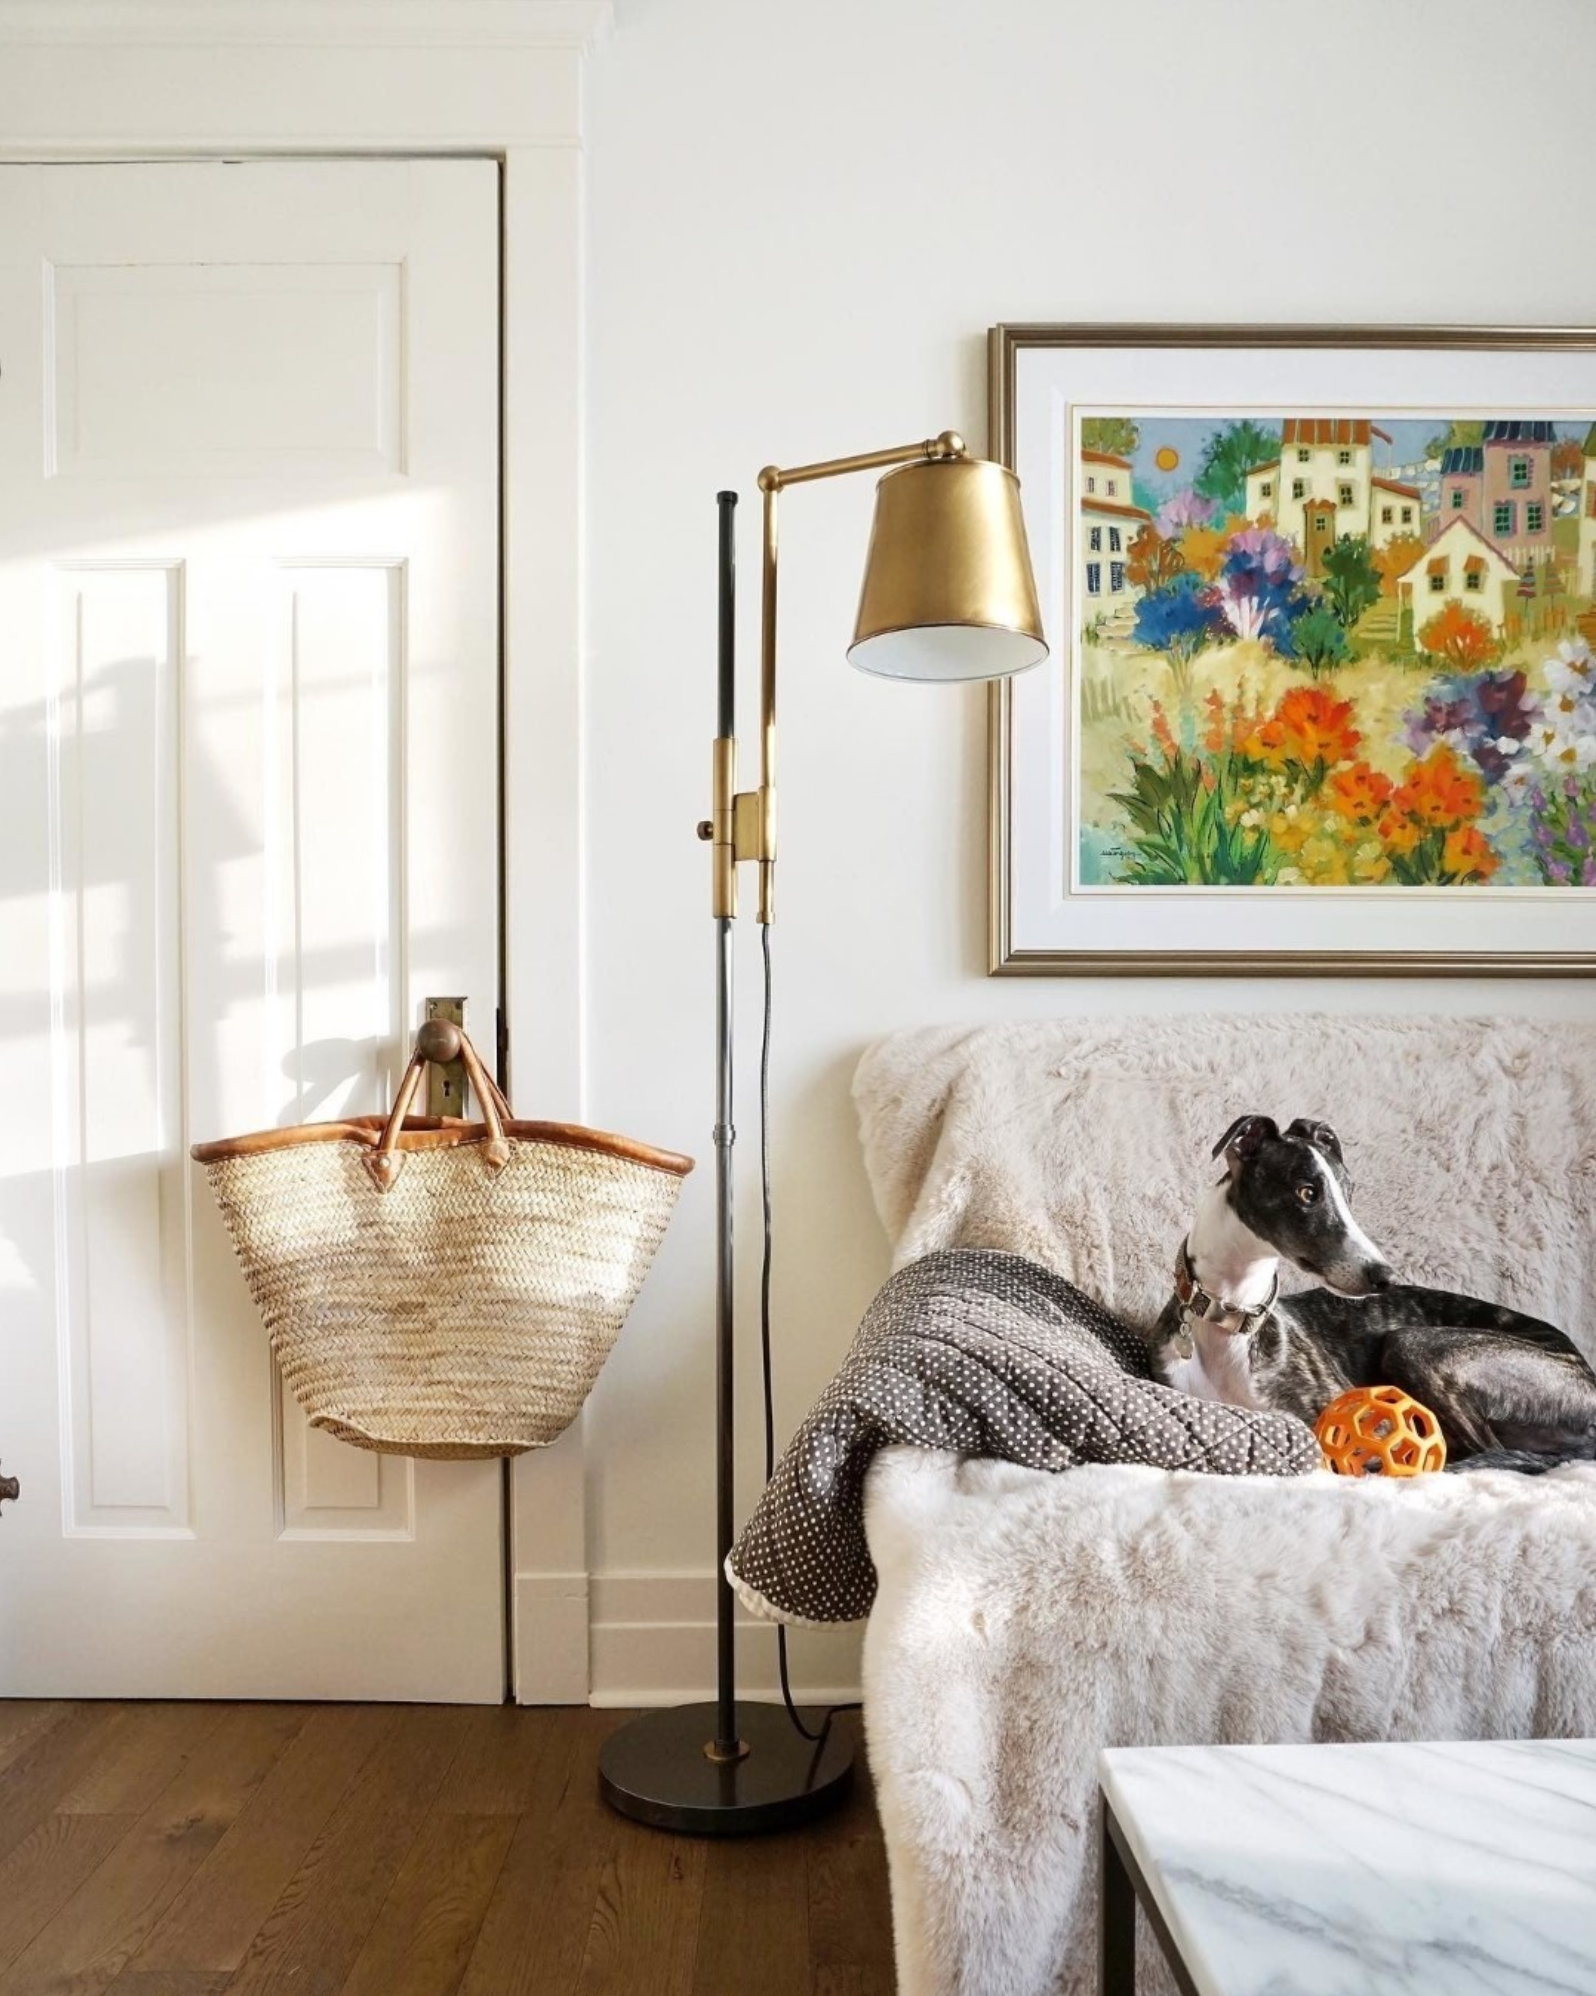 Best Warm White Paint Colors - Farrow and Ball - IMAGE: by @anneinfashion via @tuxedothewhippet feat. paint color 'Pointing' from Farrow and Ball